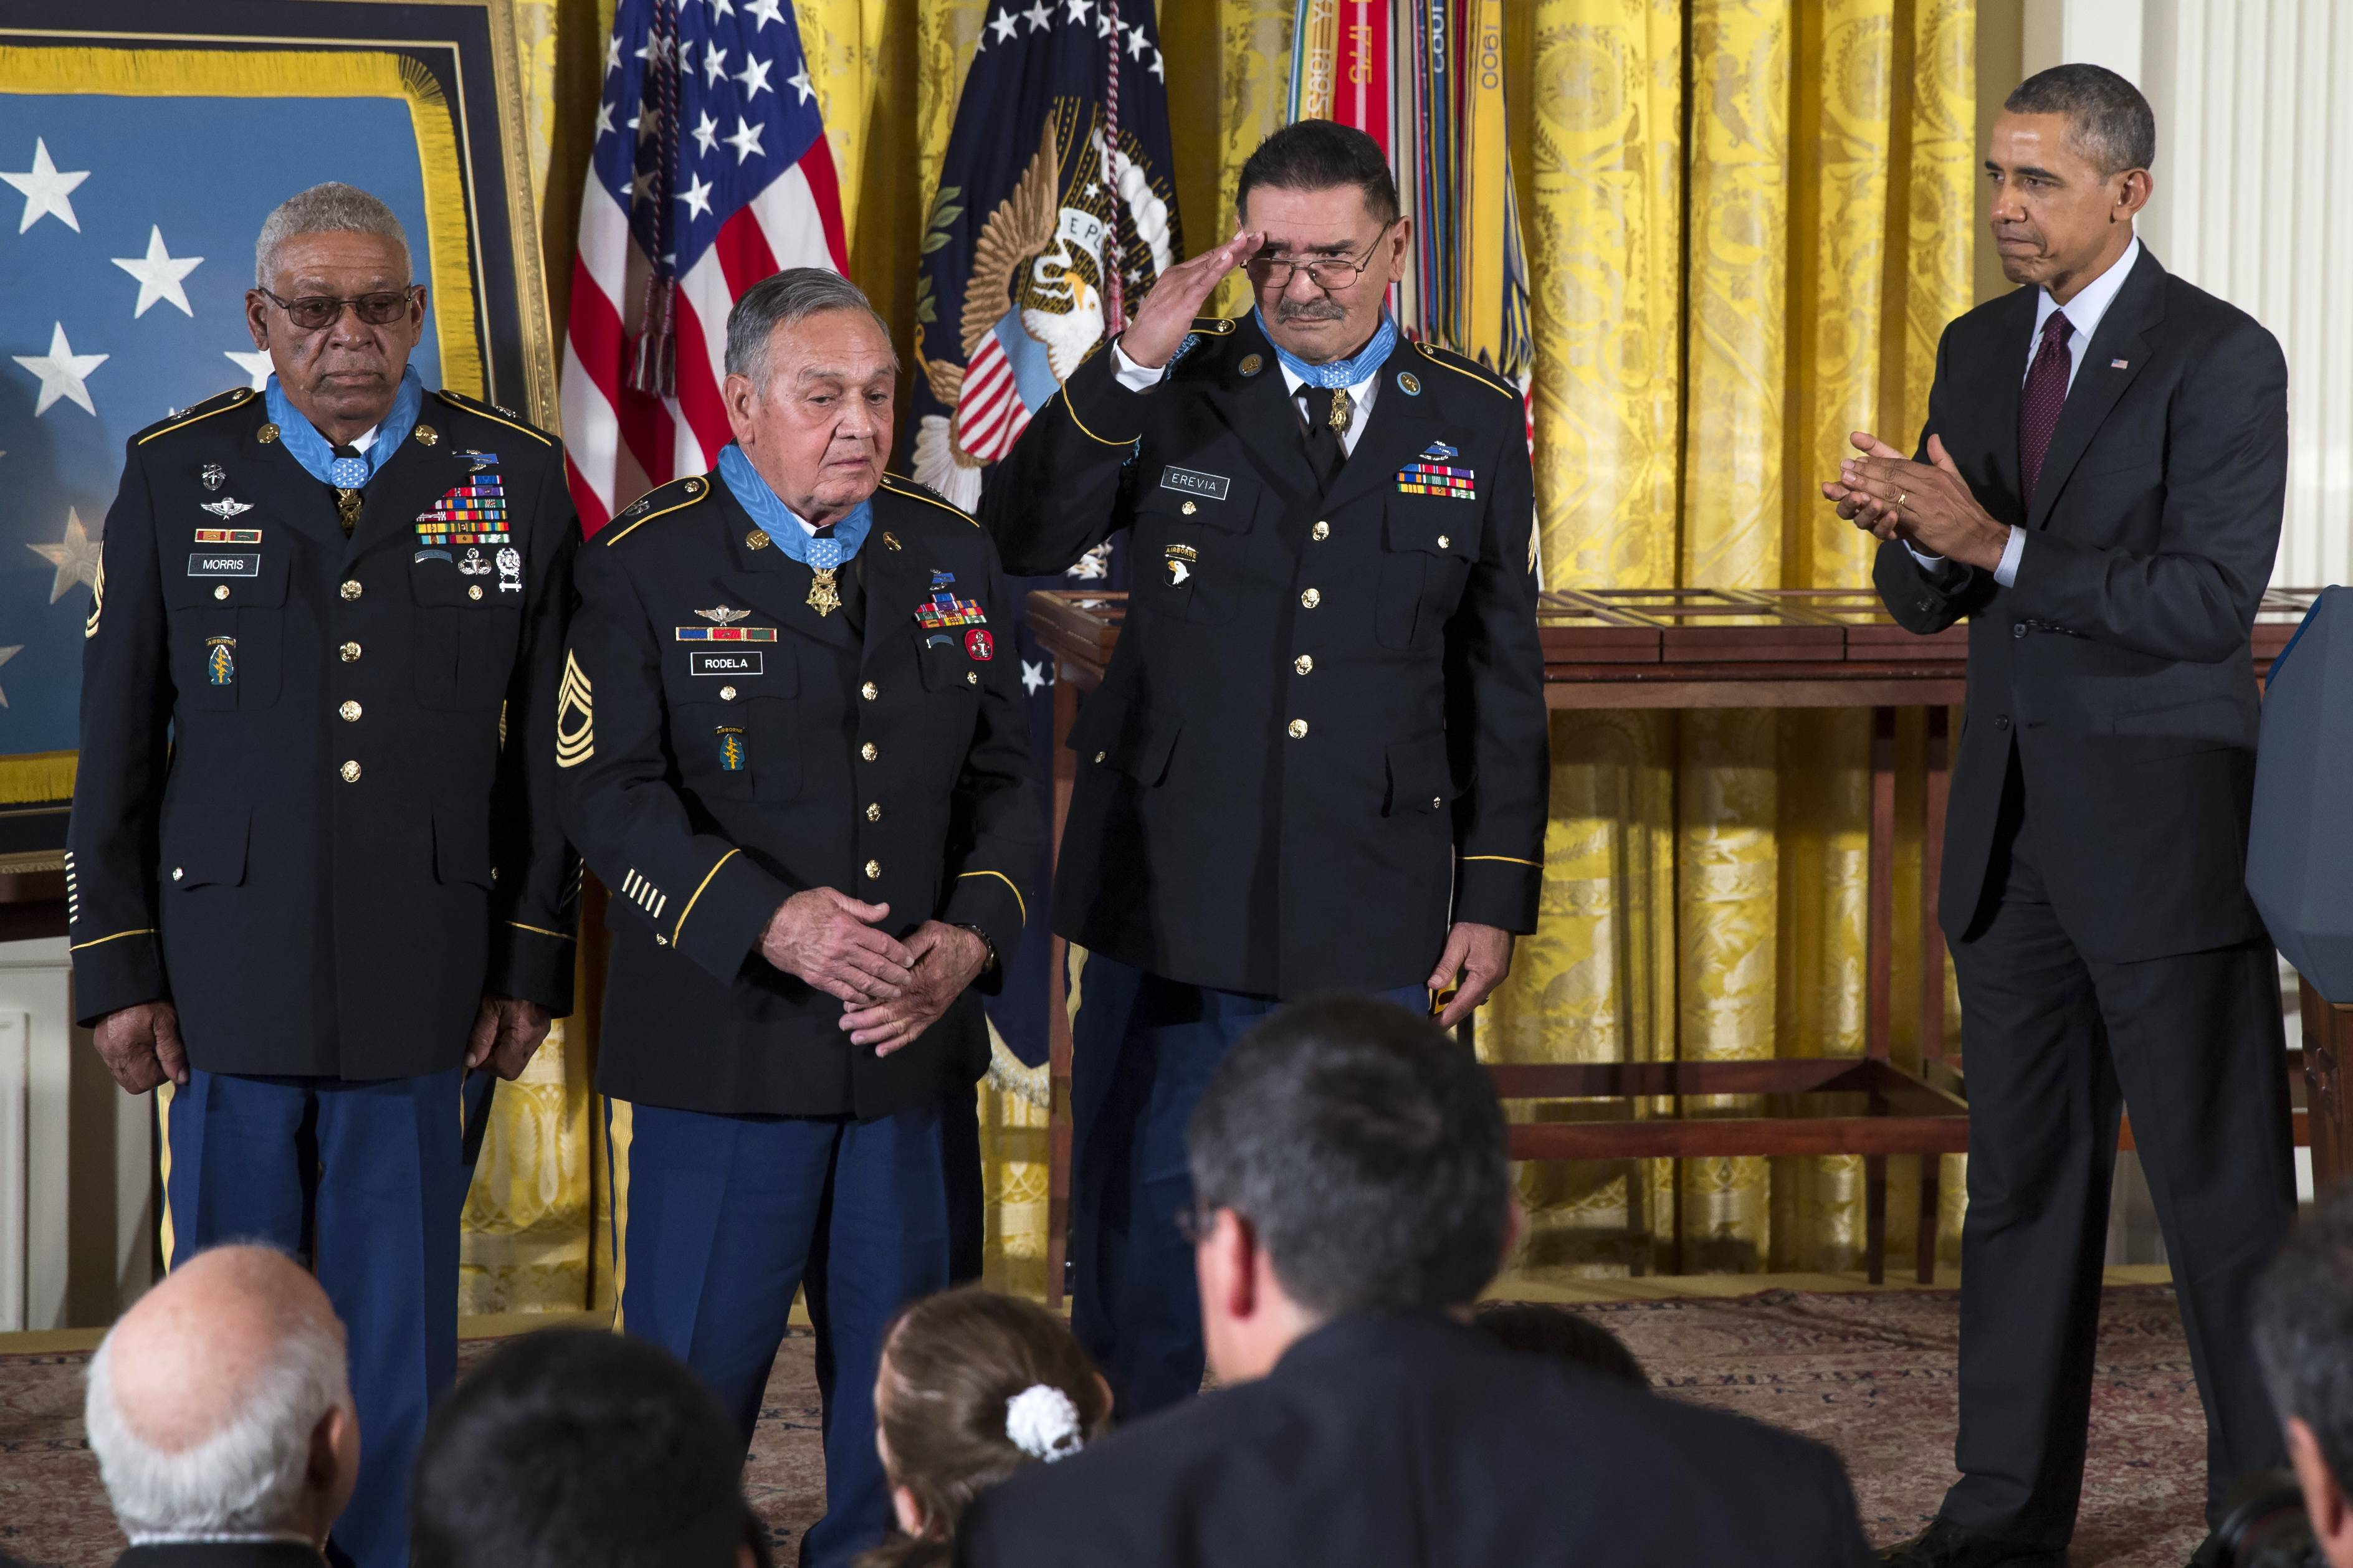 From left, Staff Sgt. Melvin Morris, Sgt. First Class Jose Rodela and Spc. Santiago J. Erevia are applauded by President Barack Obama, right, after being awarded the Medal of Honor during a ceremony at the White House Tuesday. Obama awarded 24 veterans the Medal of Honor for conspicuous gallantry in recognition of their valor during major combat operations in World War II, Korean War and Vietnam War.